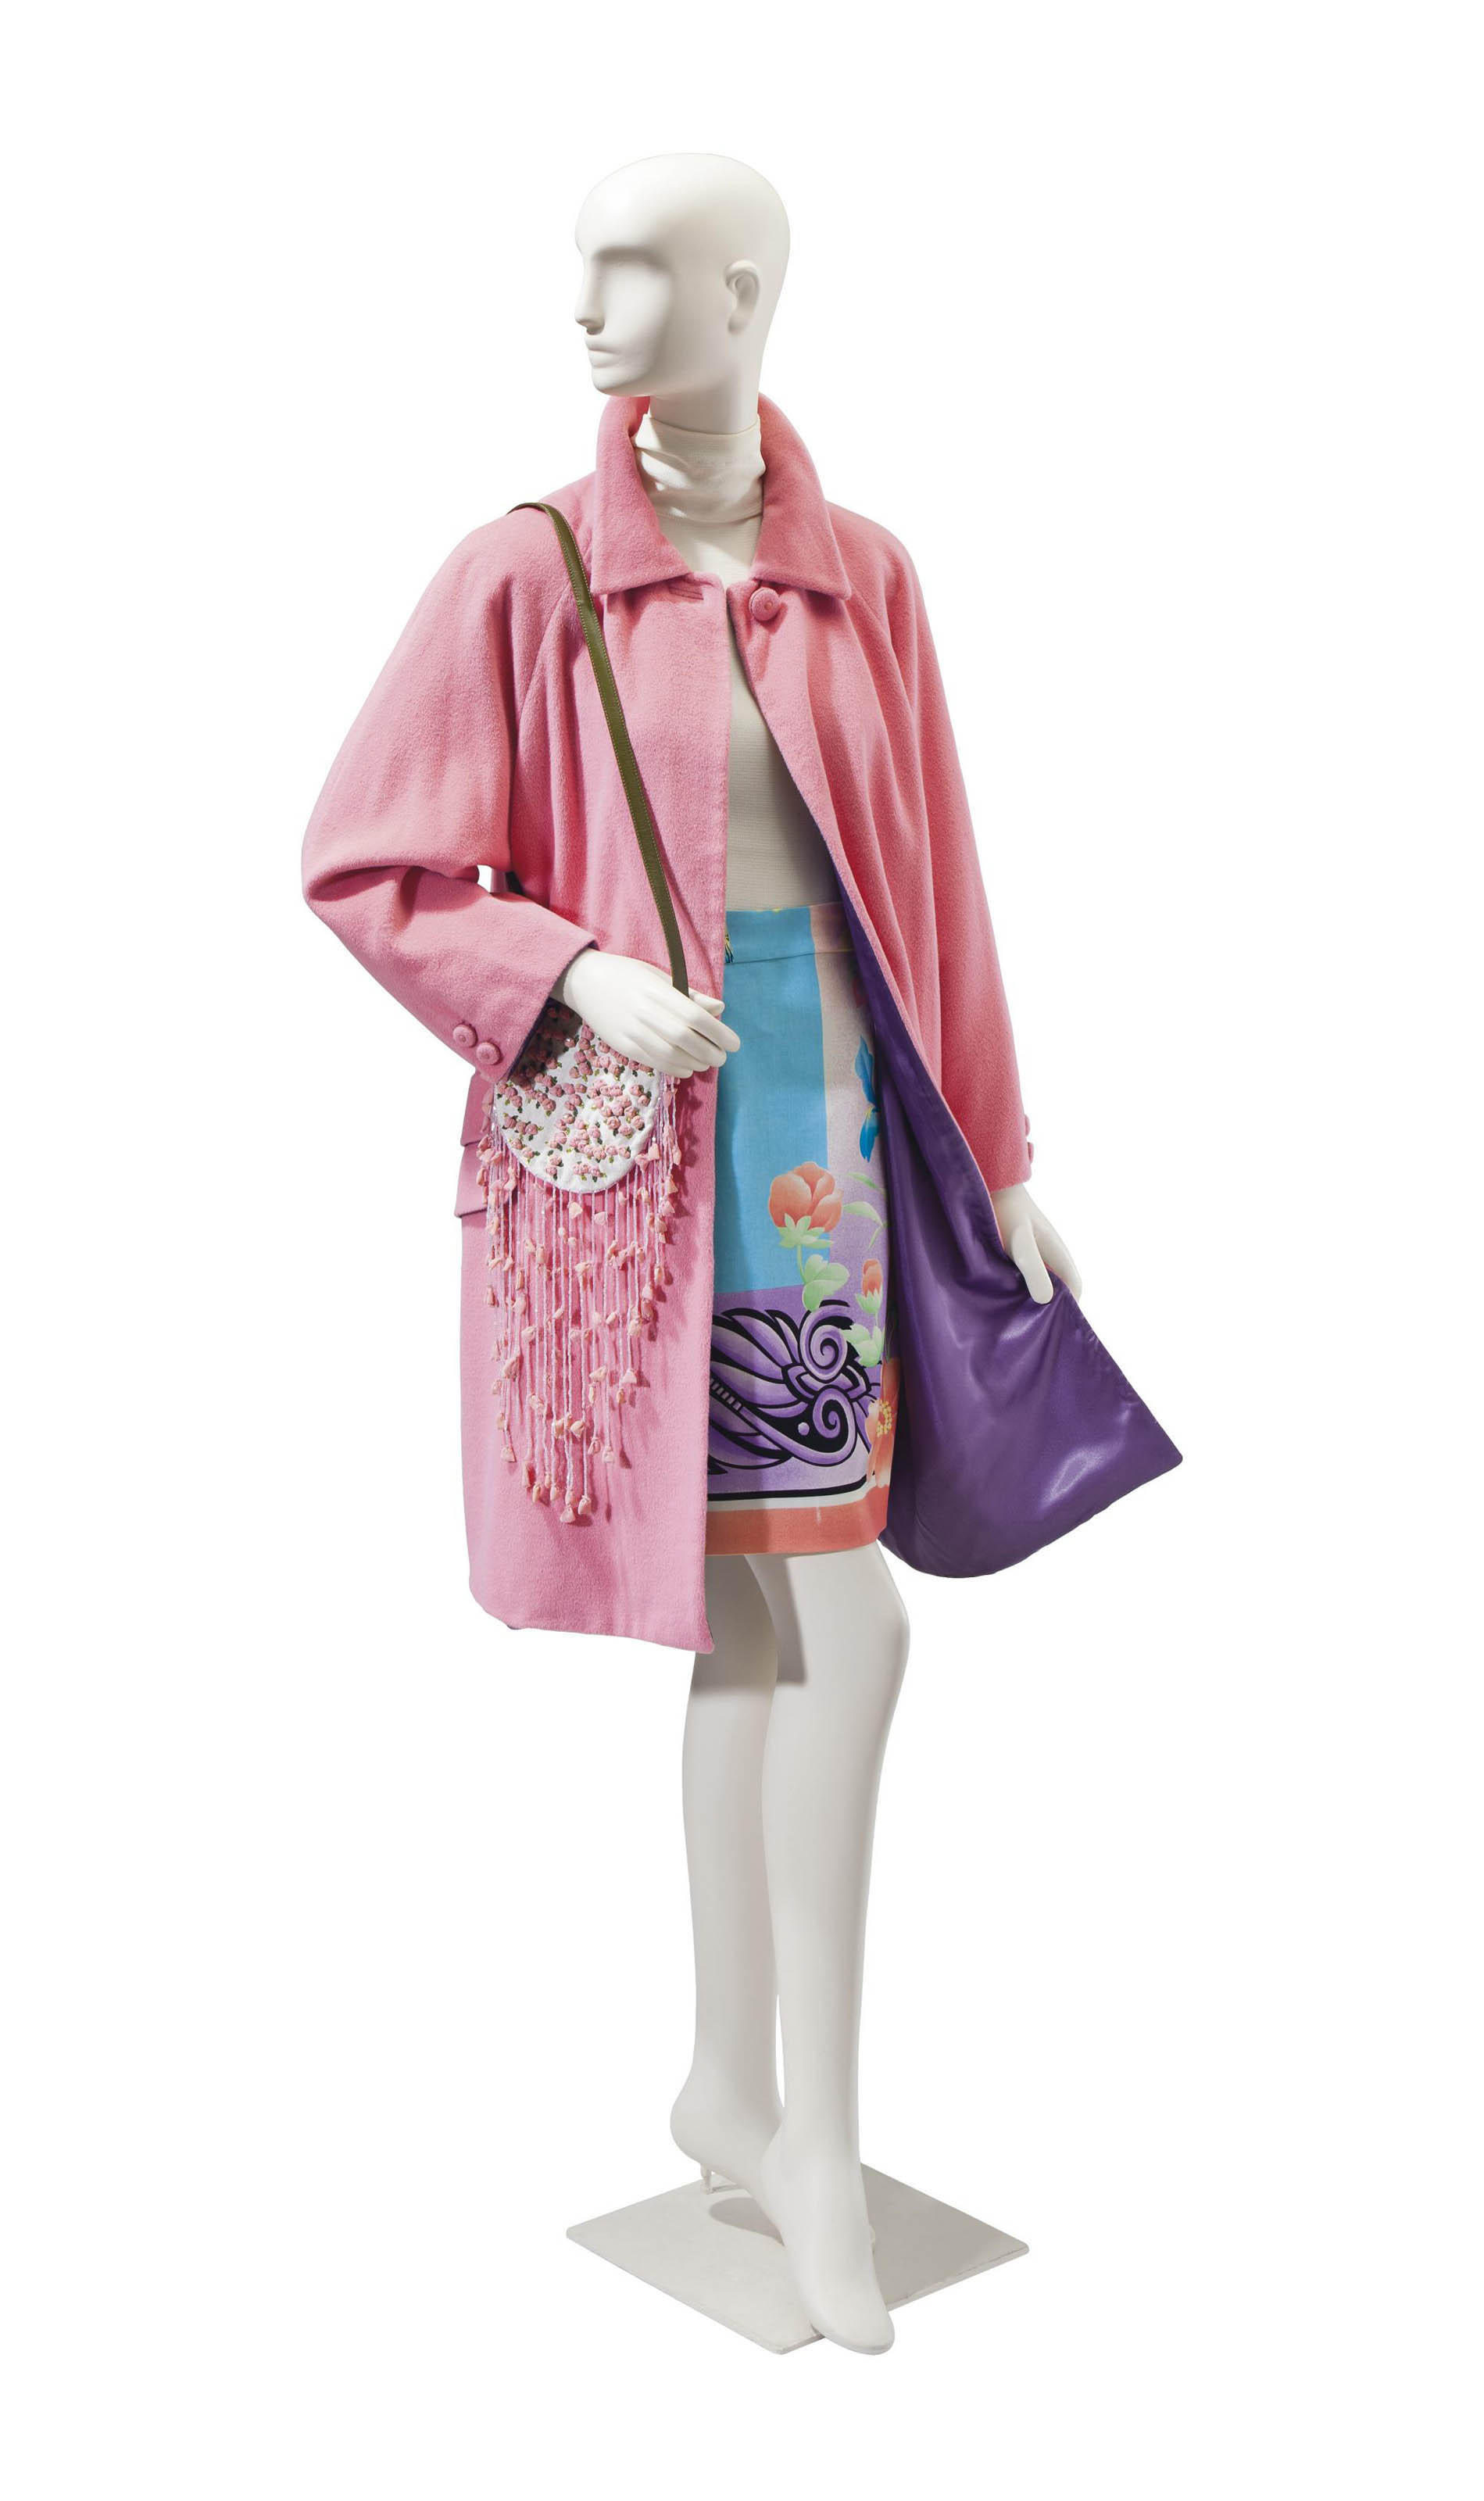 A VERSACE PINK WOOL COAT AND PRINT SKIRT WITH A VALENTINO BEADED HANDBAG